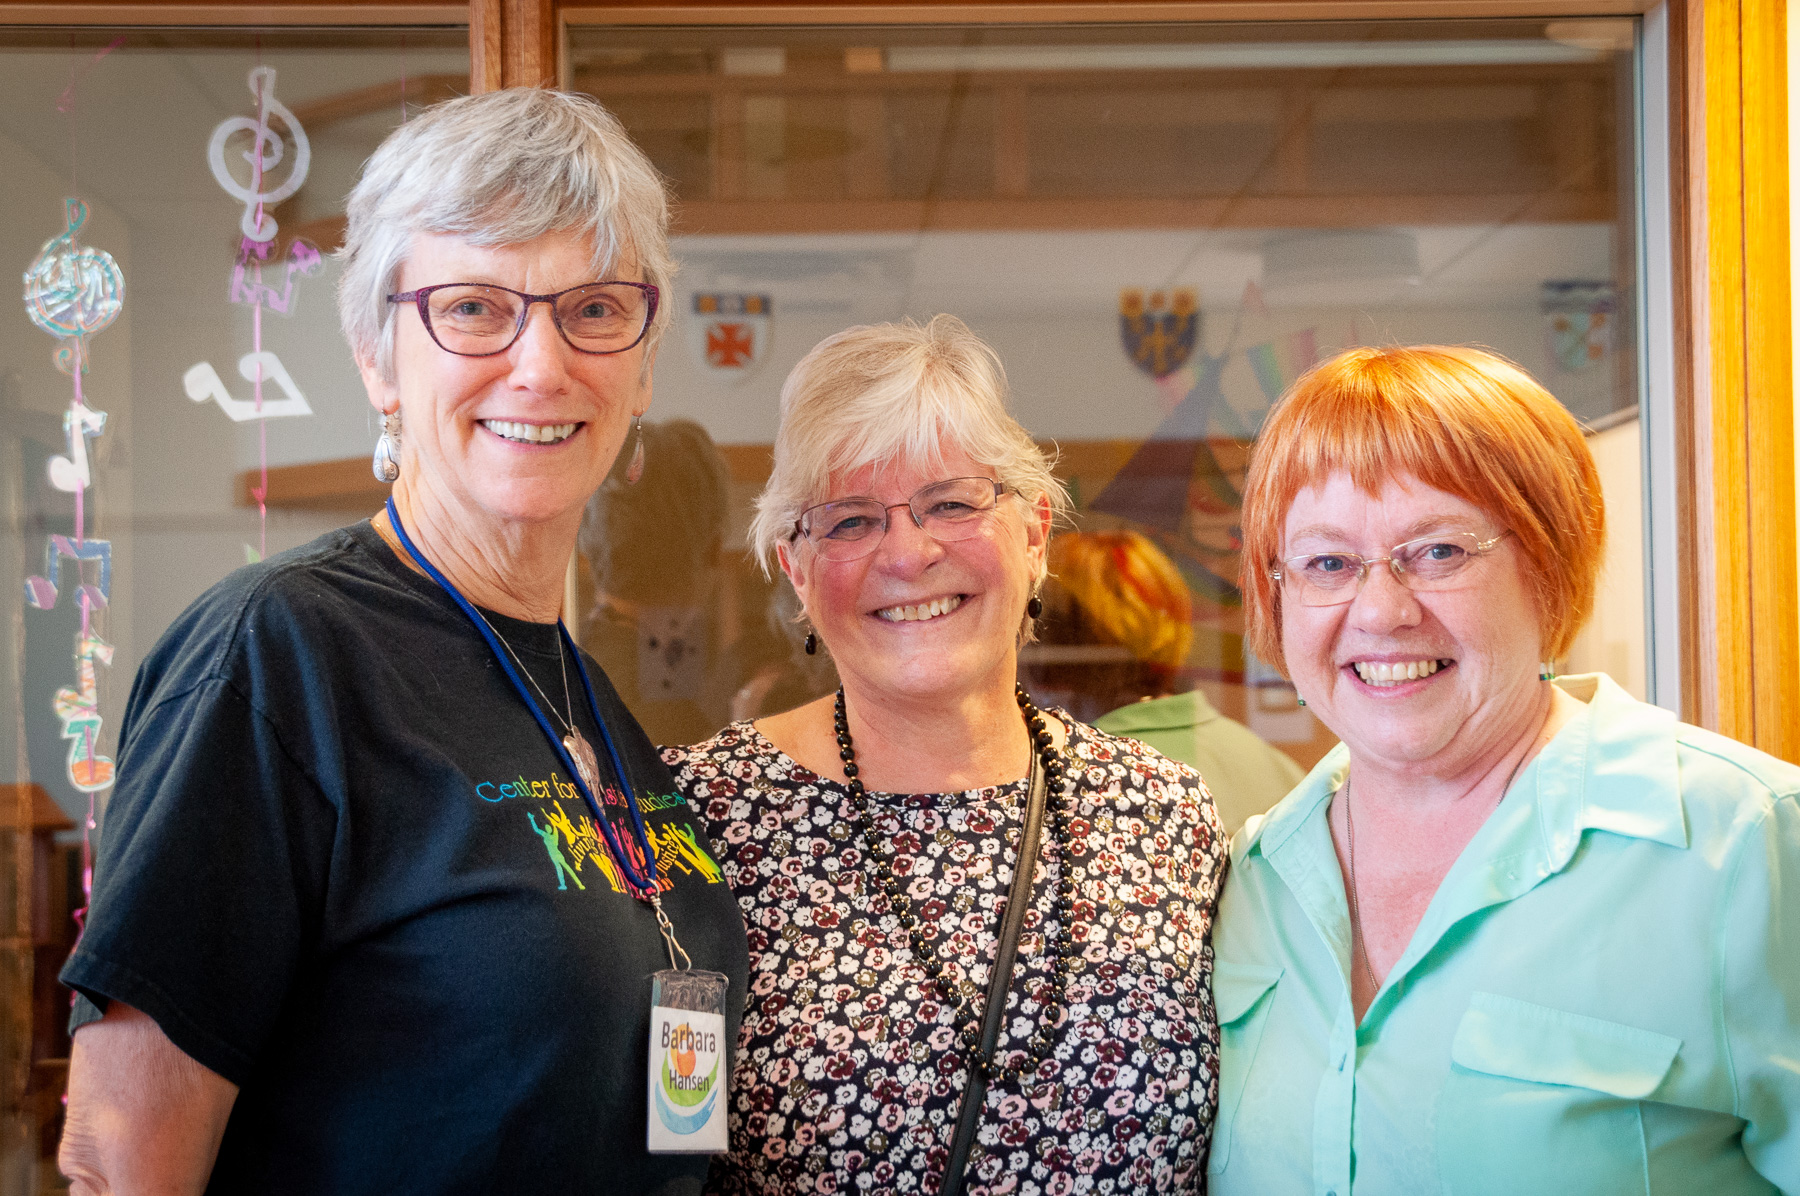 Barbara Hansen, United Church, Brigitte McKenzie, Lutheran Church, Nancy Ford, Anglican Church